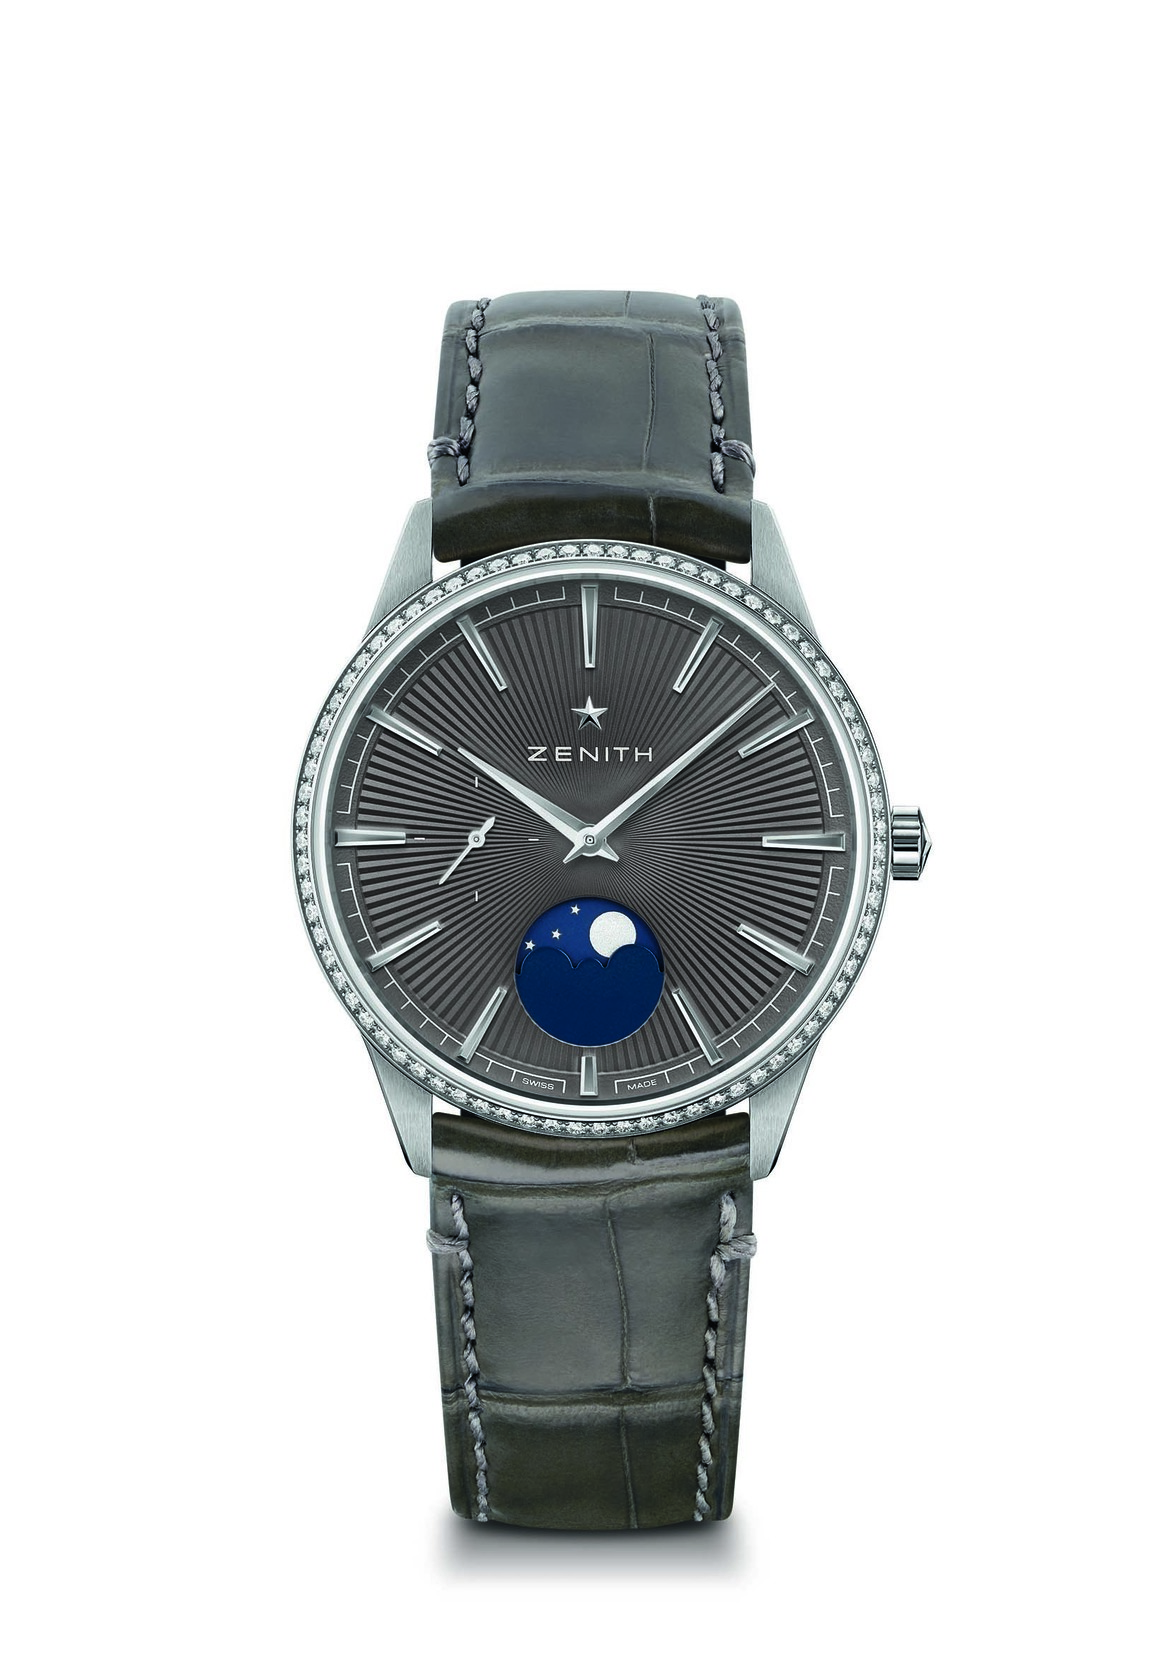 ELITE MOONPHASE - 36MM腕錶 HK$122,300